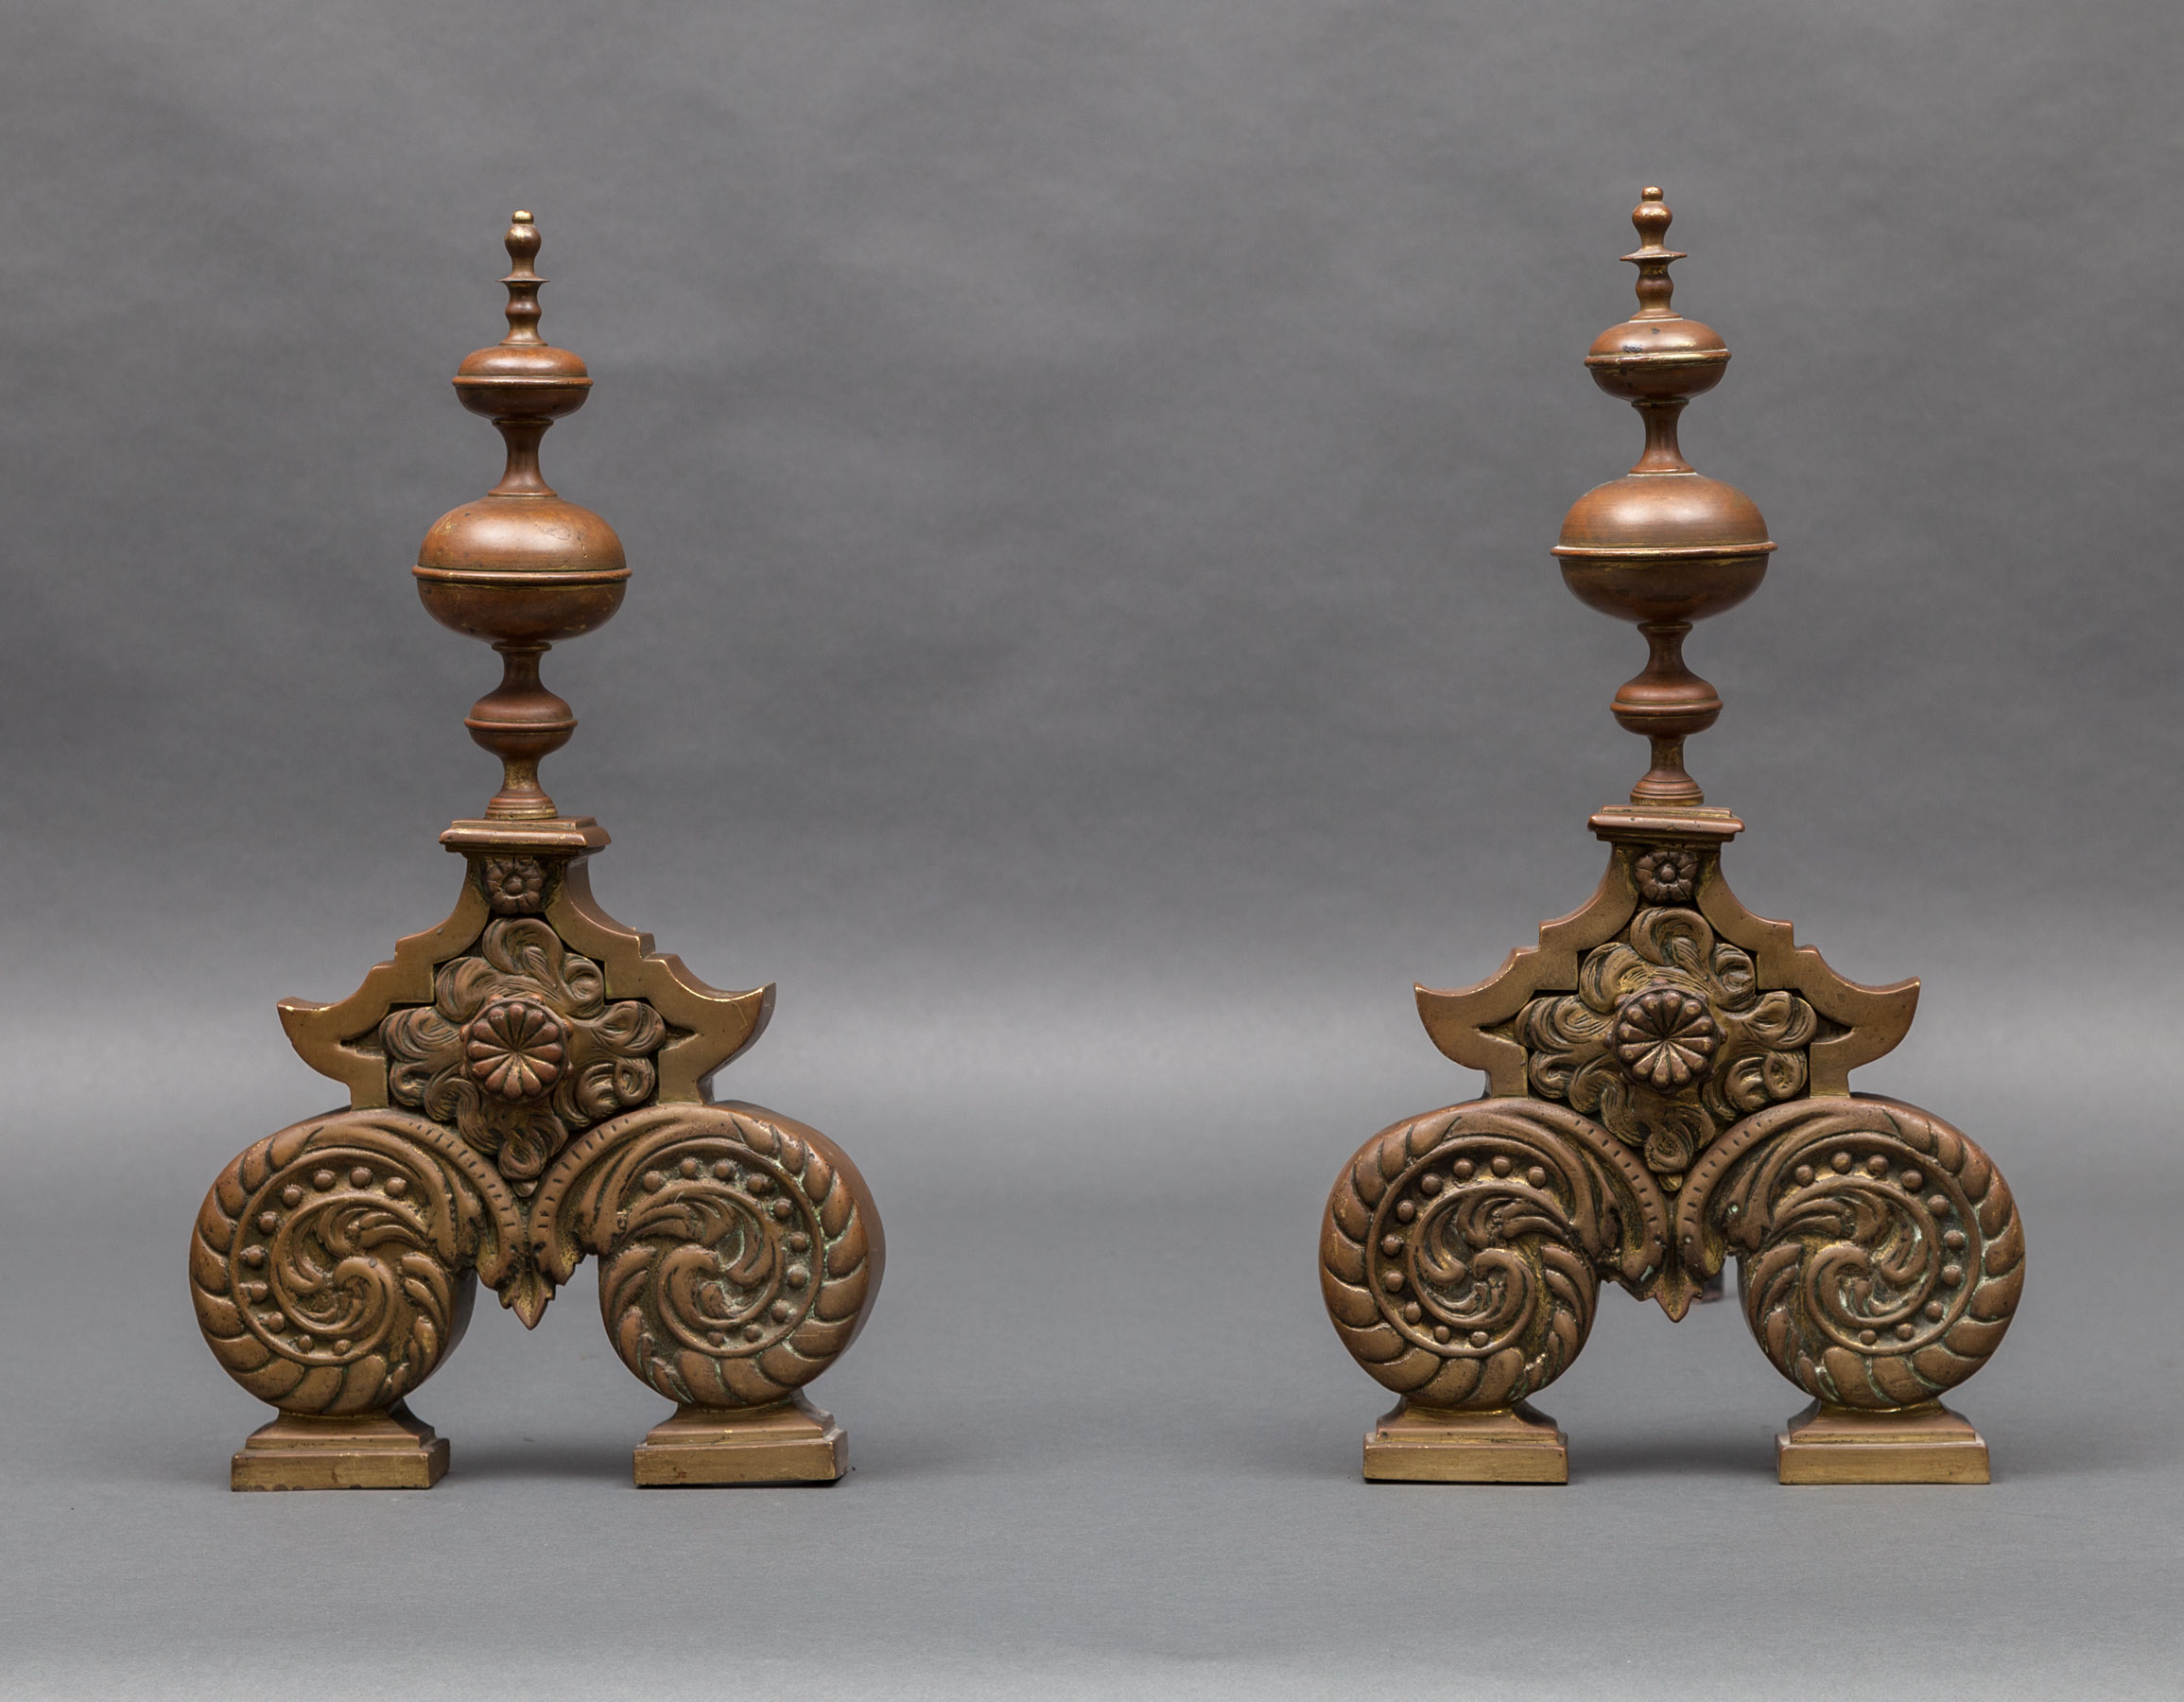 Antique Andirons – AI019